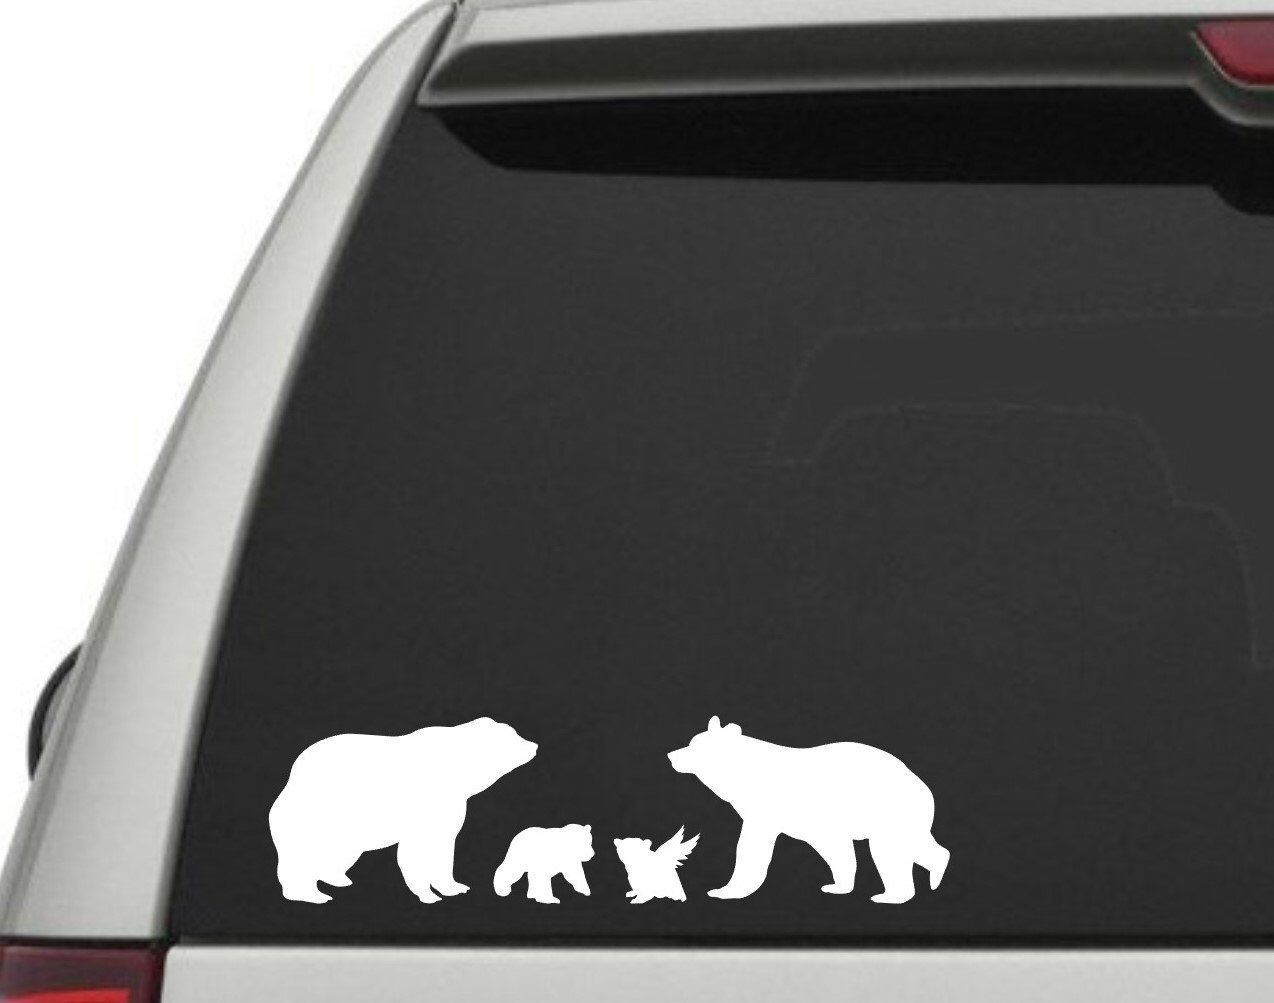 Memorial Bear Family Angel Baby Dad Mom Bear Stick Figure Etsy Family Decals Family Car Decals Car Decals [ 1003 x 1274 Pixel ]